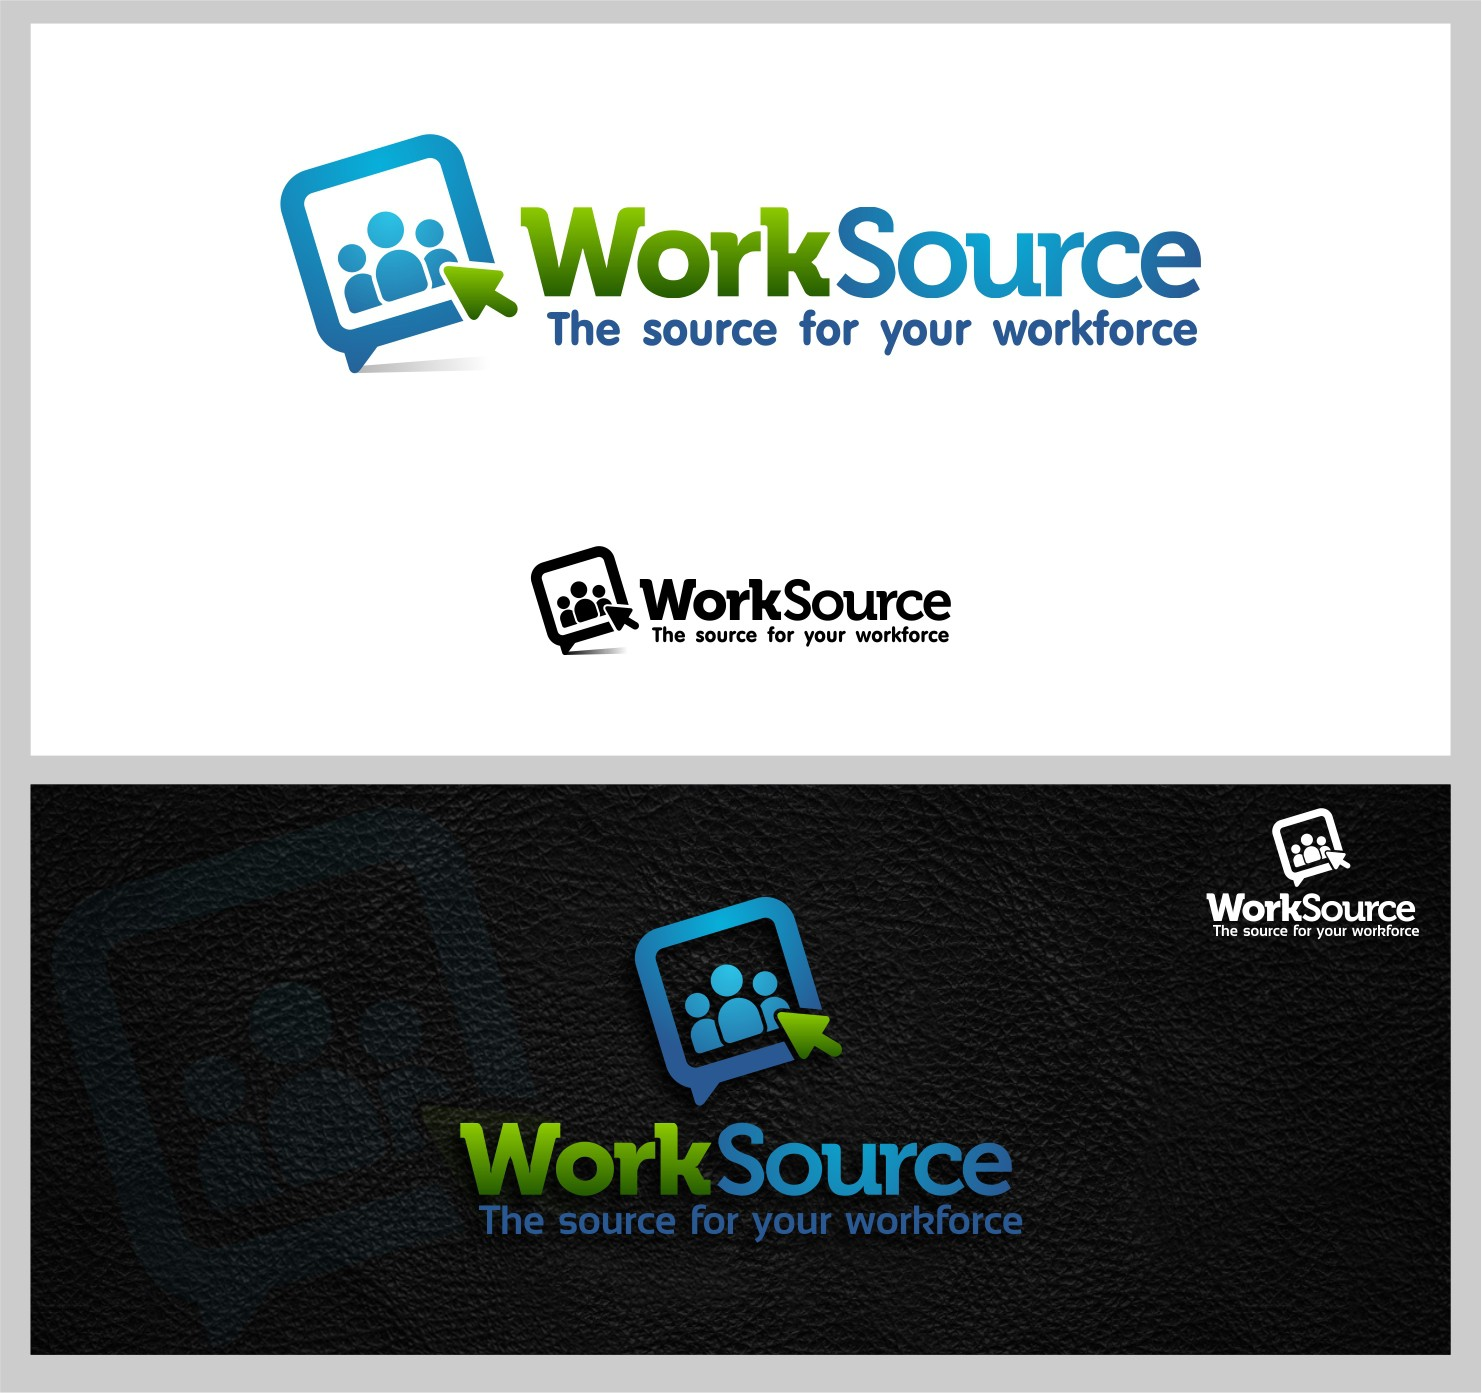 New logo wanted for WorkSource